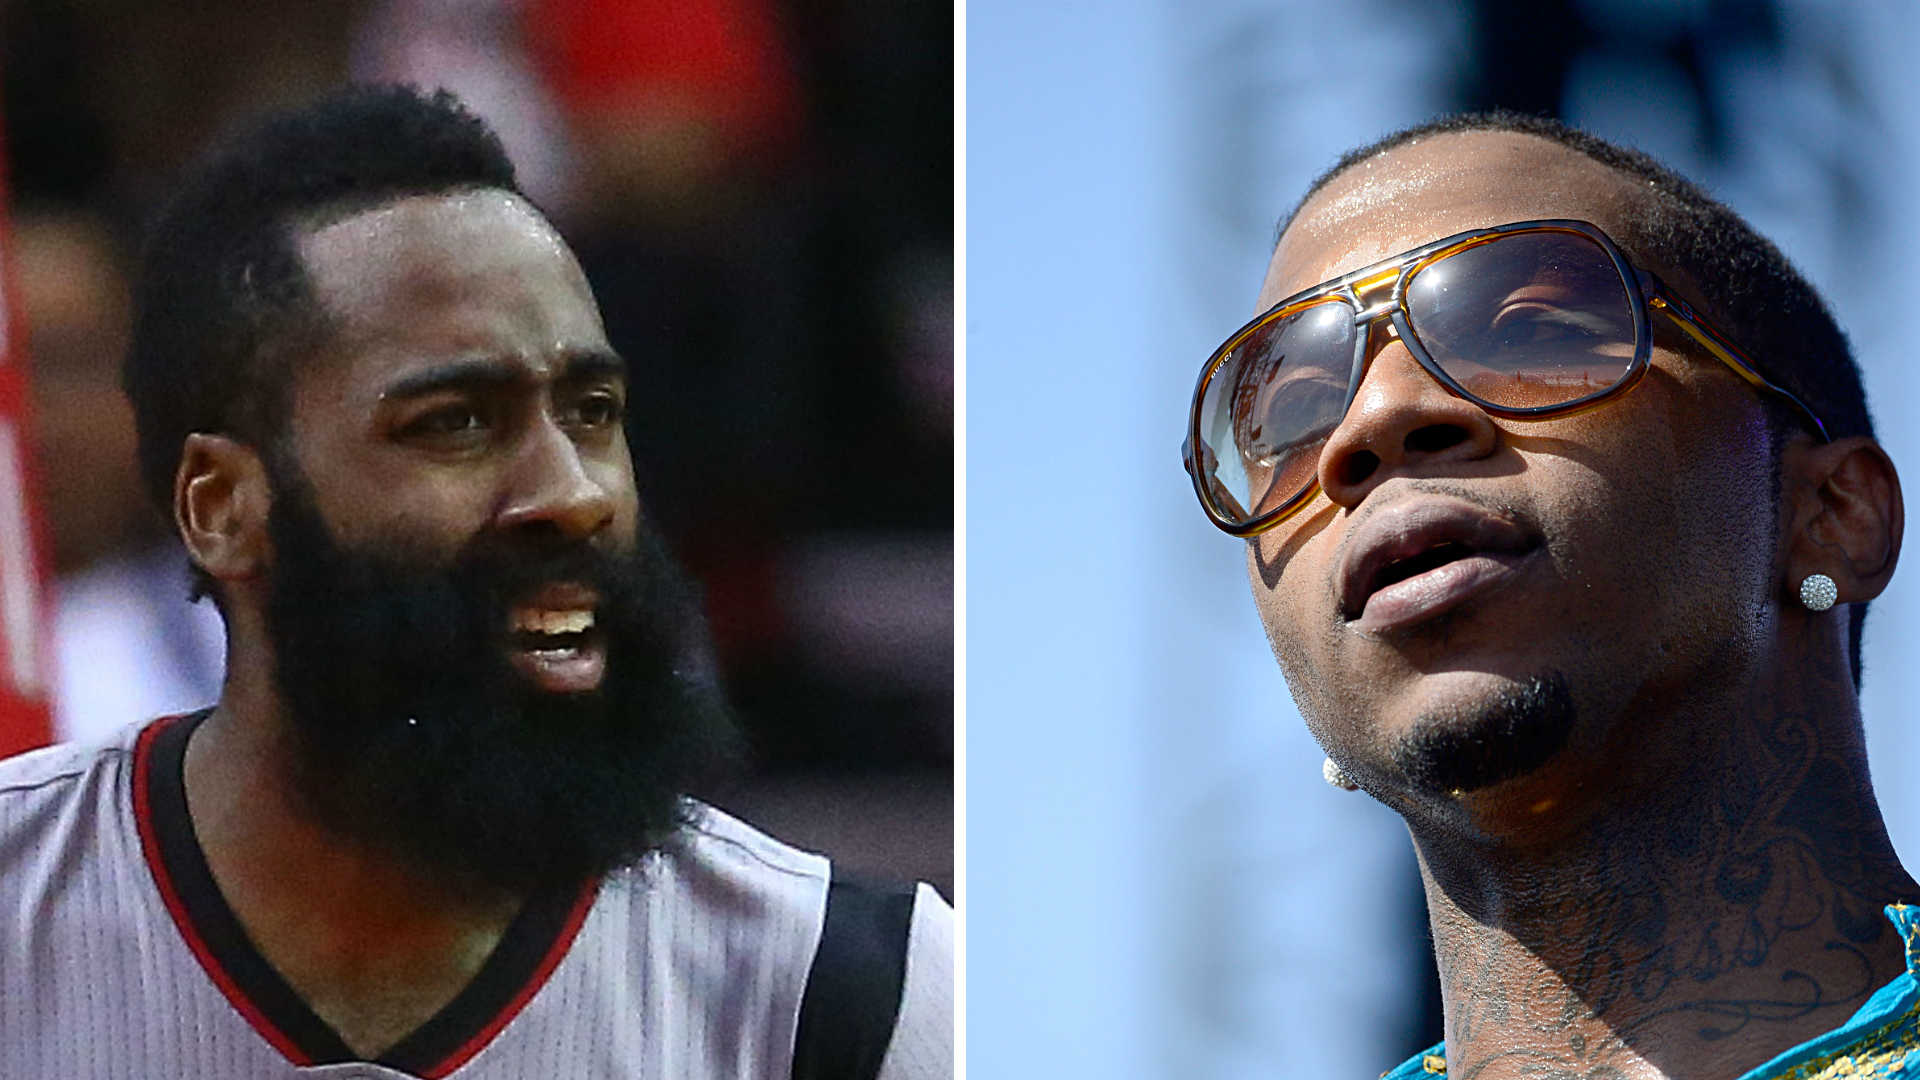 James Harden partied at multiple clubs, heard MVP chants, following loss